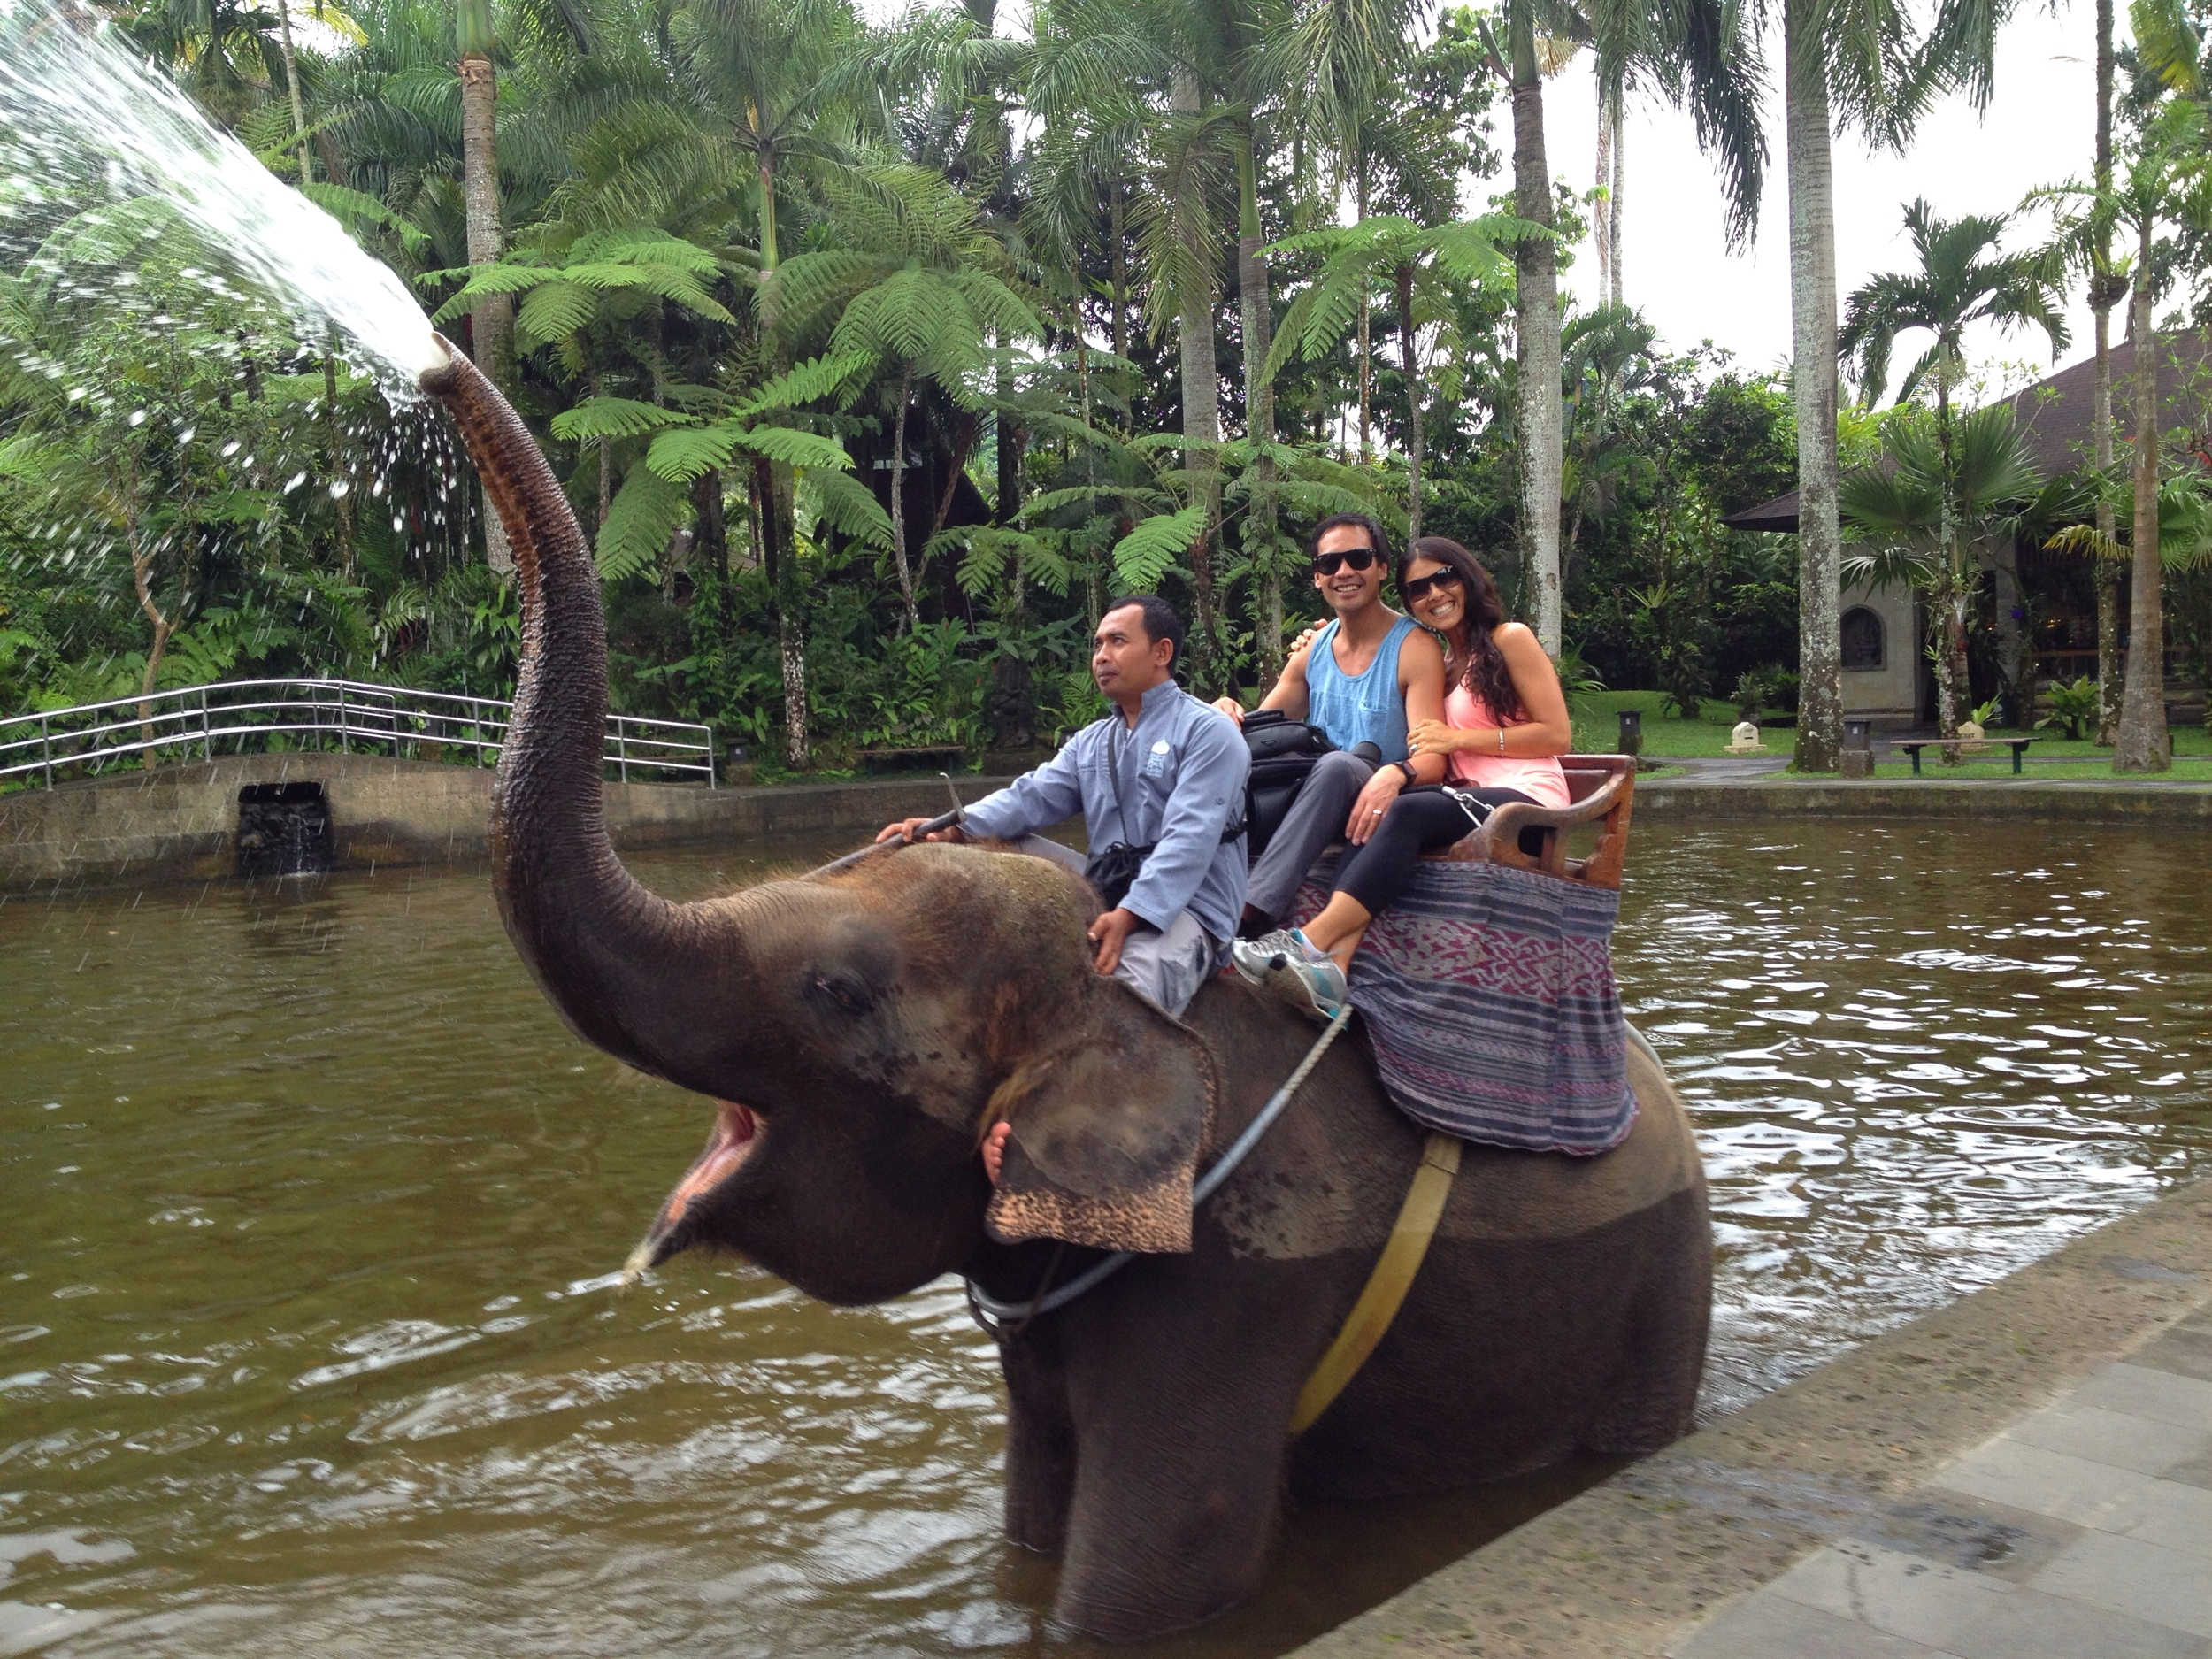 Our first elephant ride through the cacao plantations in Ubud. Cutest and happiest elephants we've ever seen!